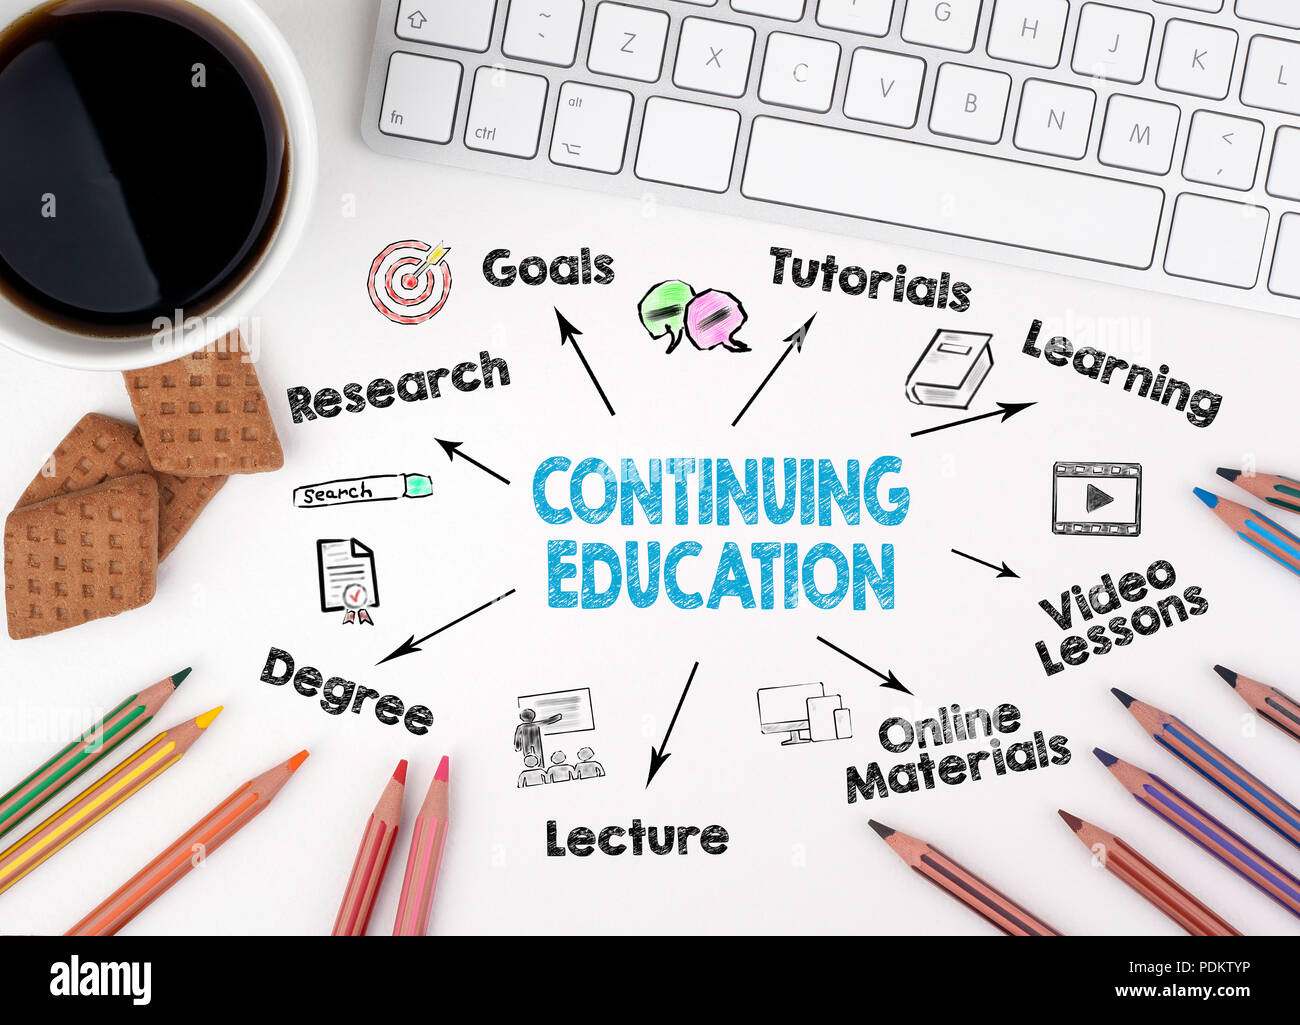 Continuing Education abstract Concept - Stock Image